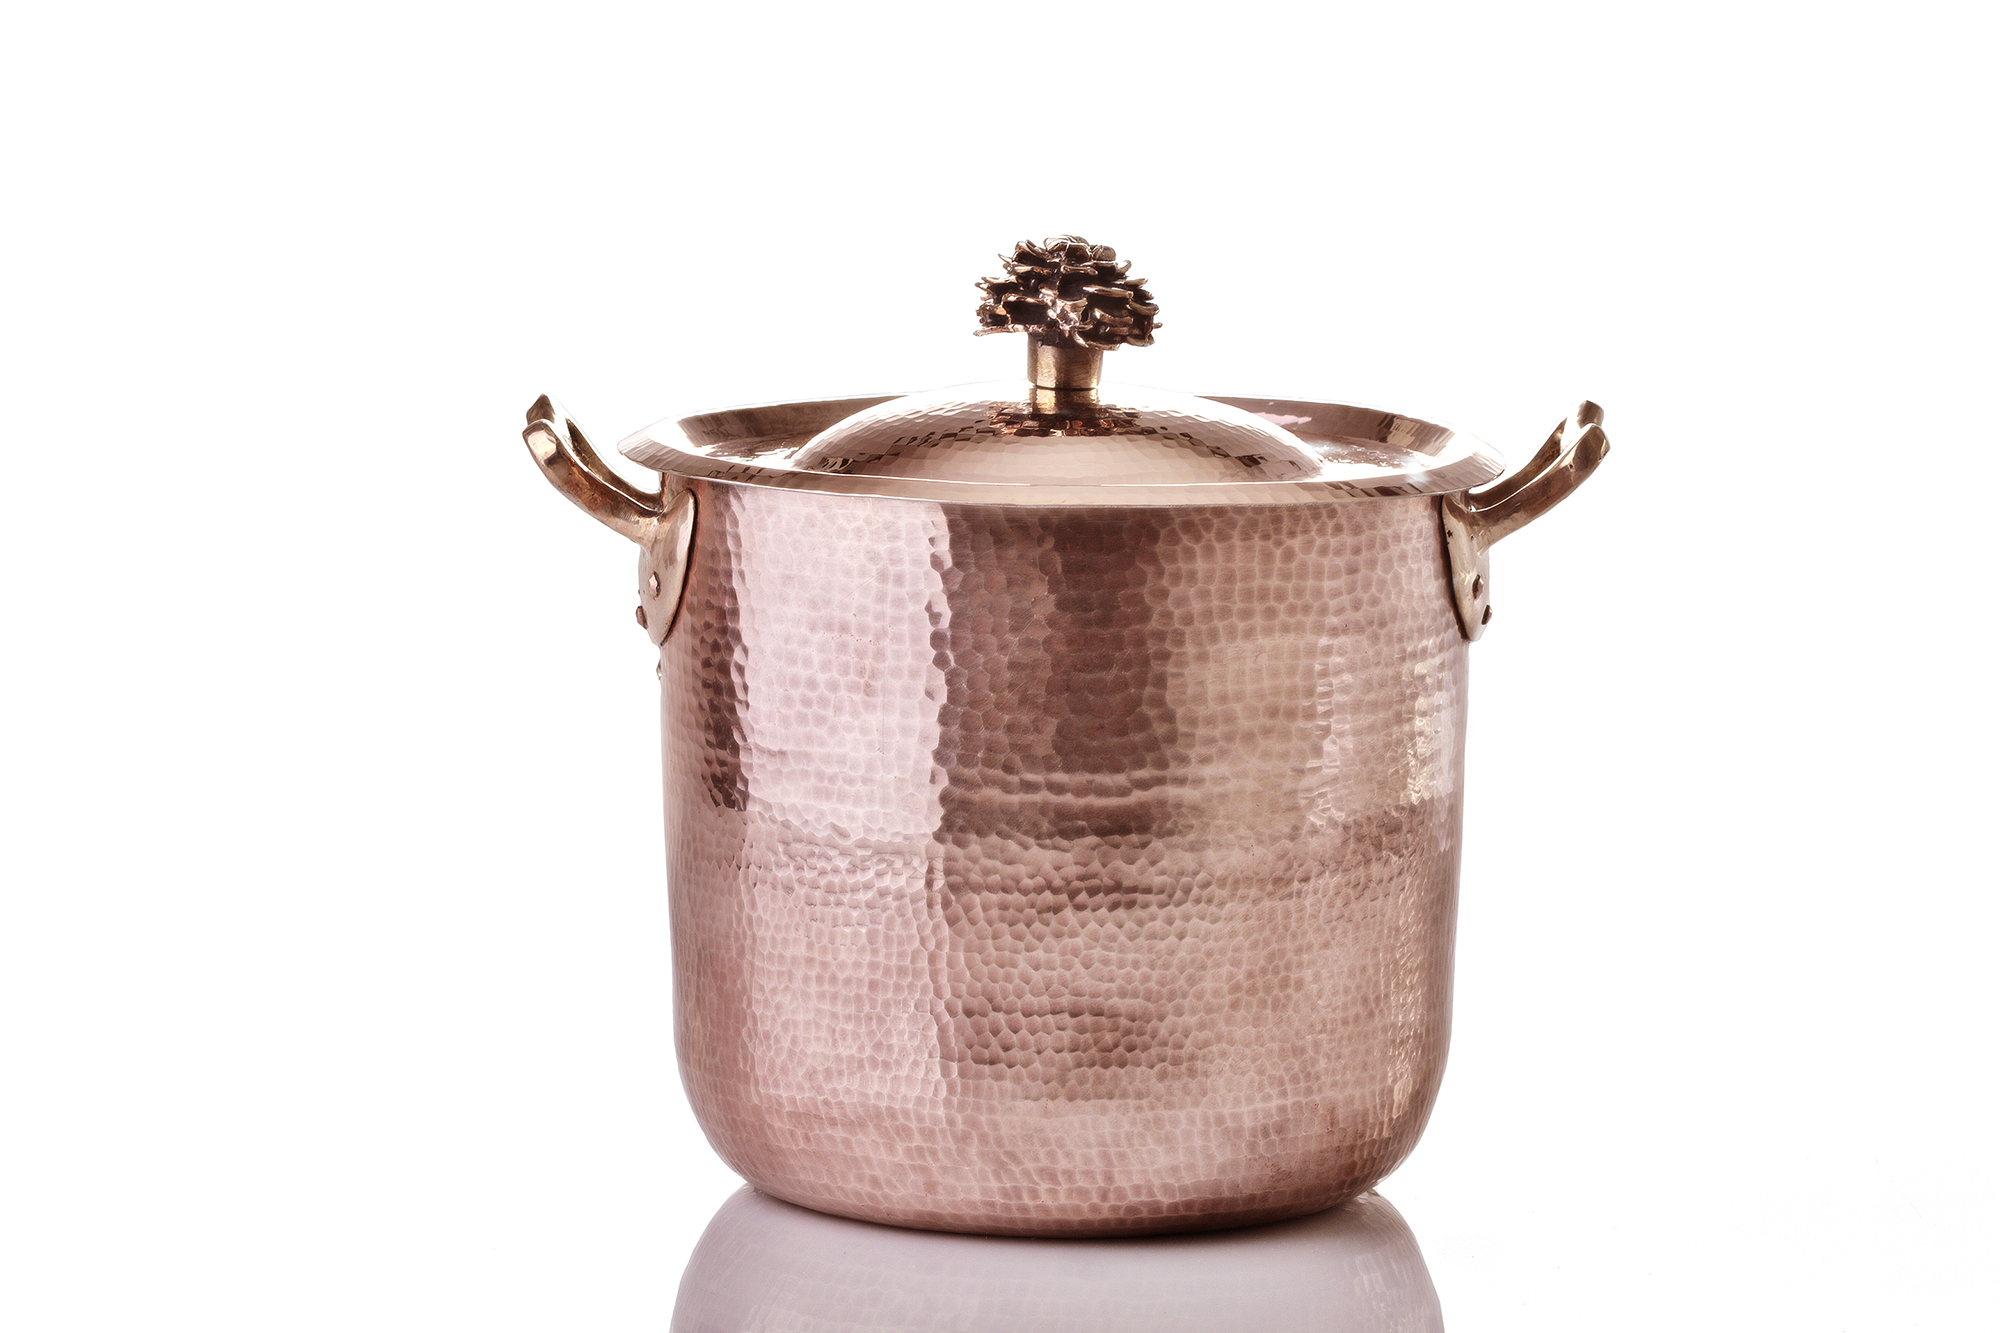 Amoretti Brothers Copper Cookware Copper Pans Buy Copper Cookware # Muebles Demeyere